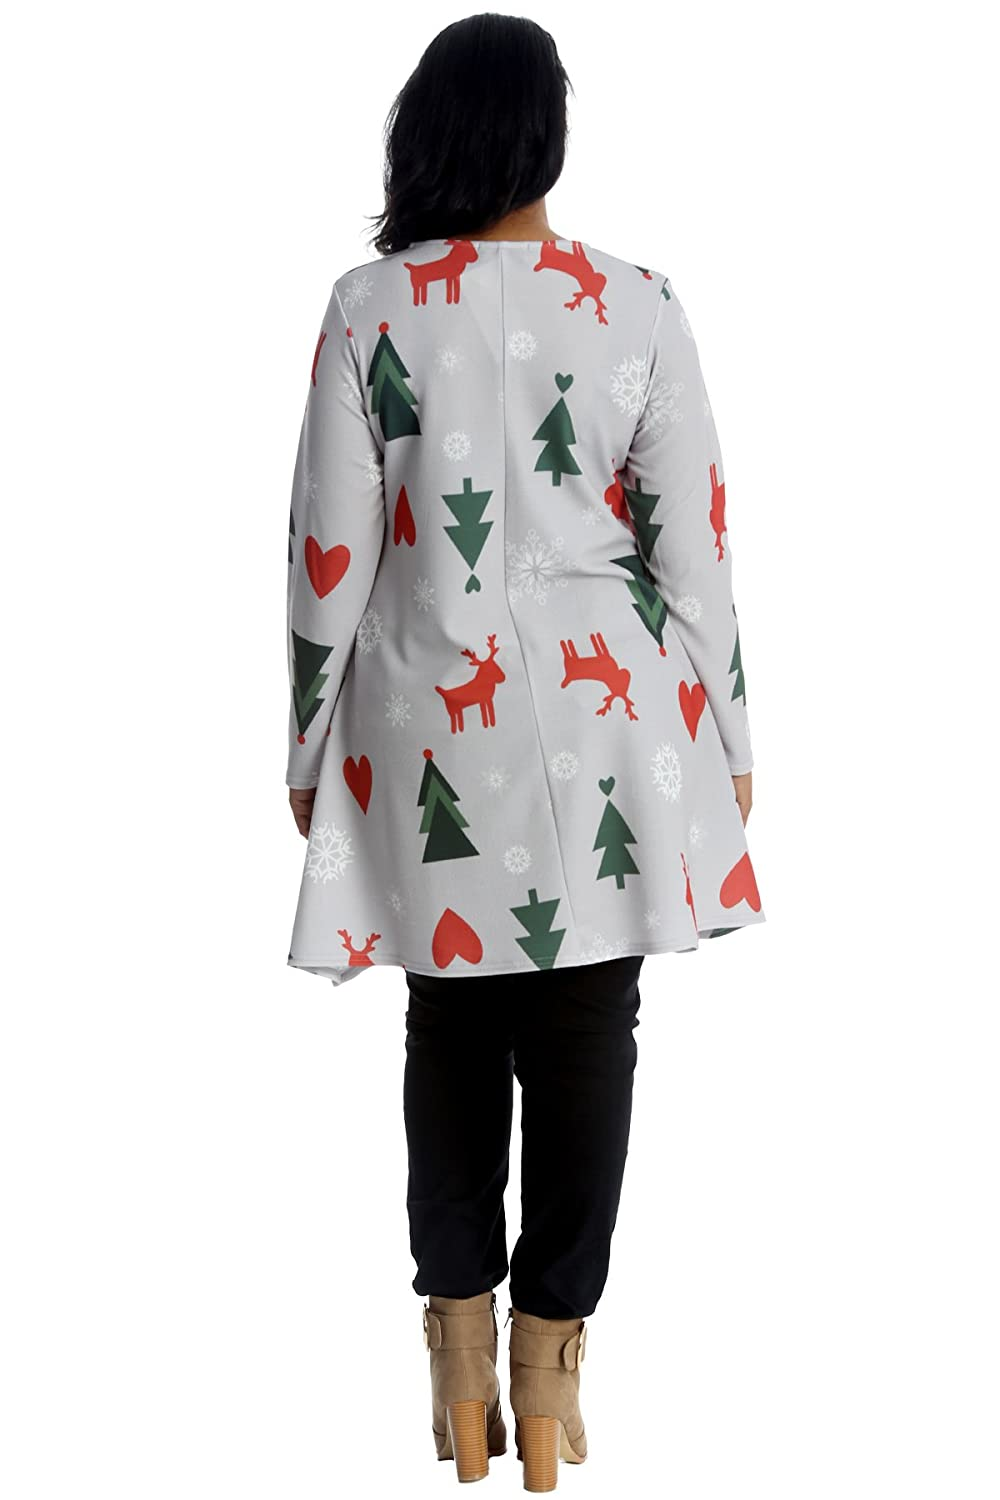 New Womens Plus Size Top Ladies Swing Tunic Christmas Cane Stocking Gingerbread